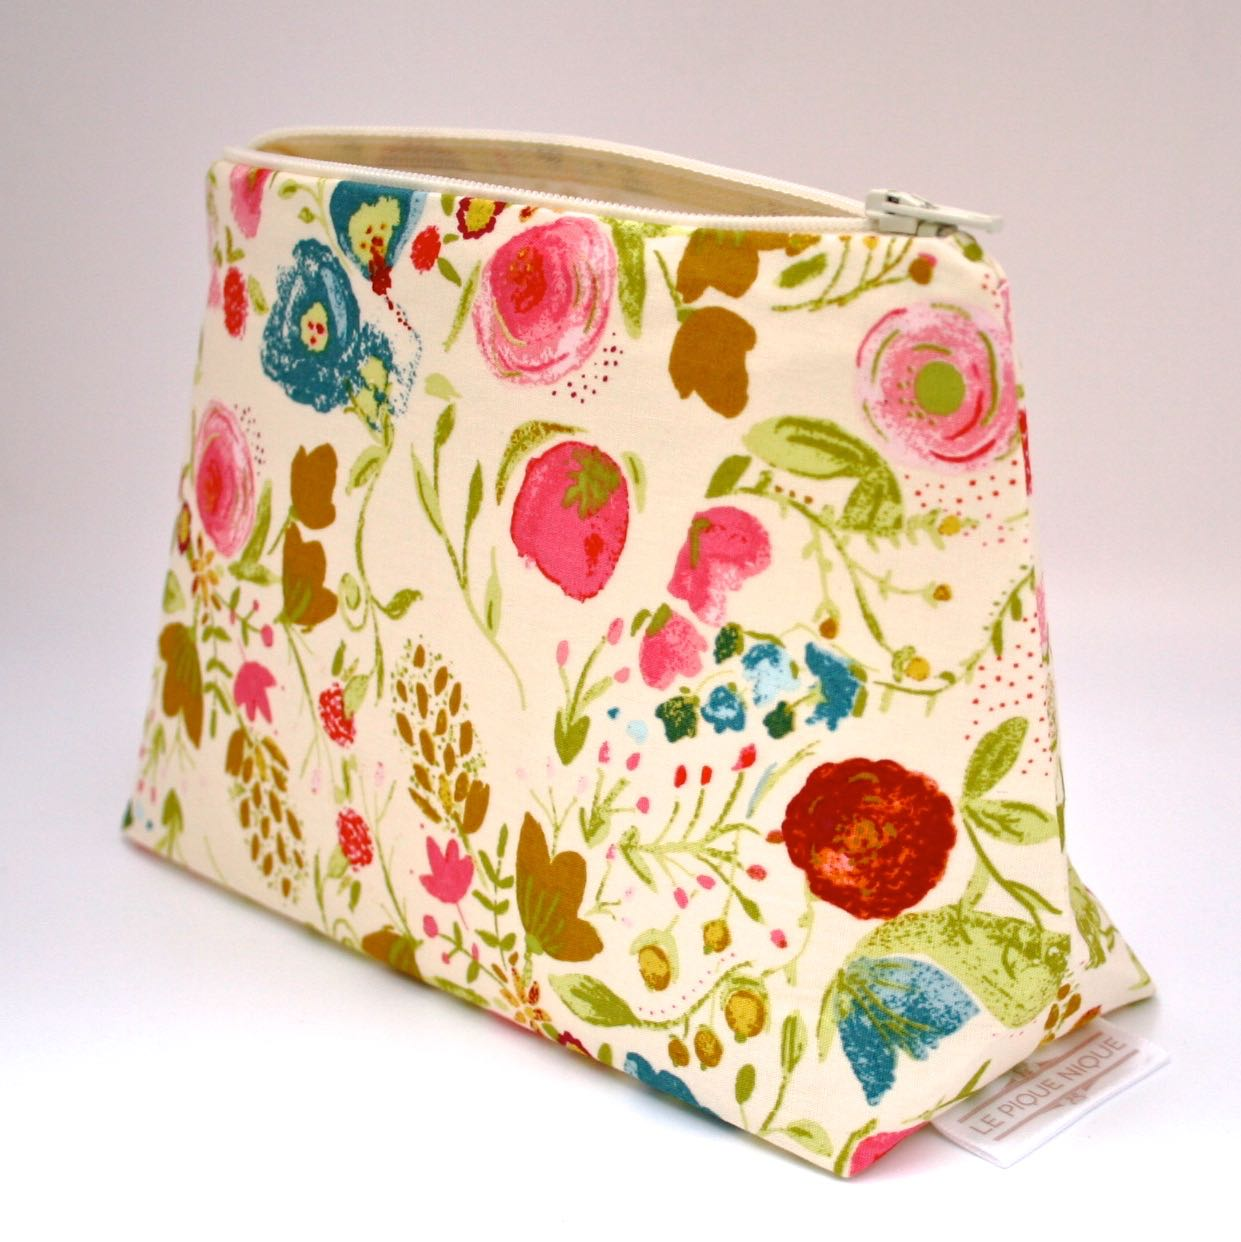 Painted garden floral cosmetic bag   le pique nique by jordani sarreal 04